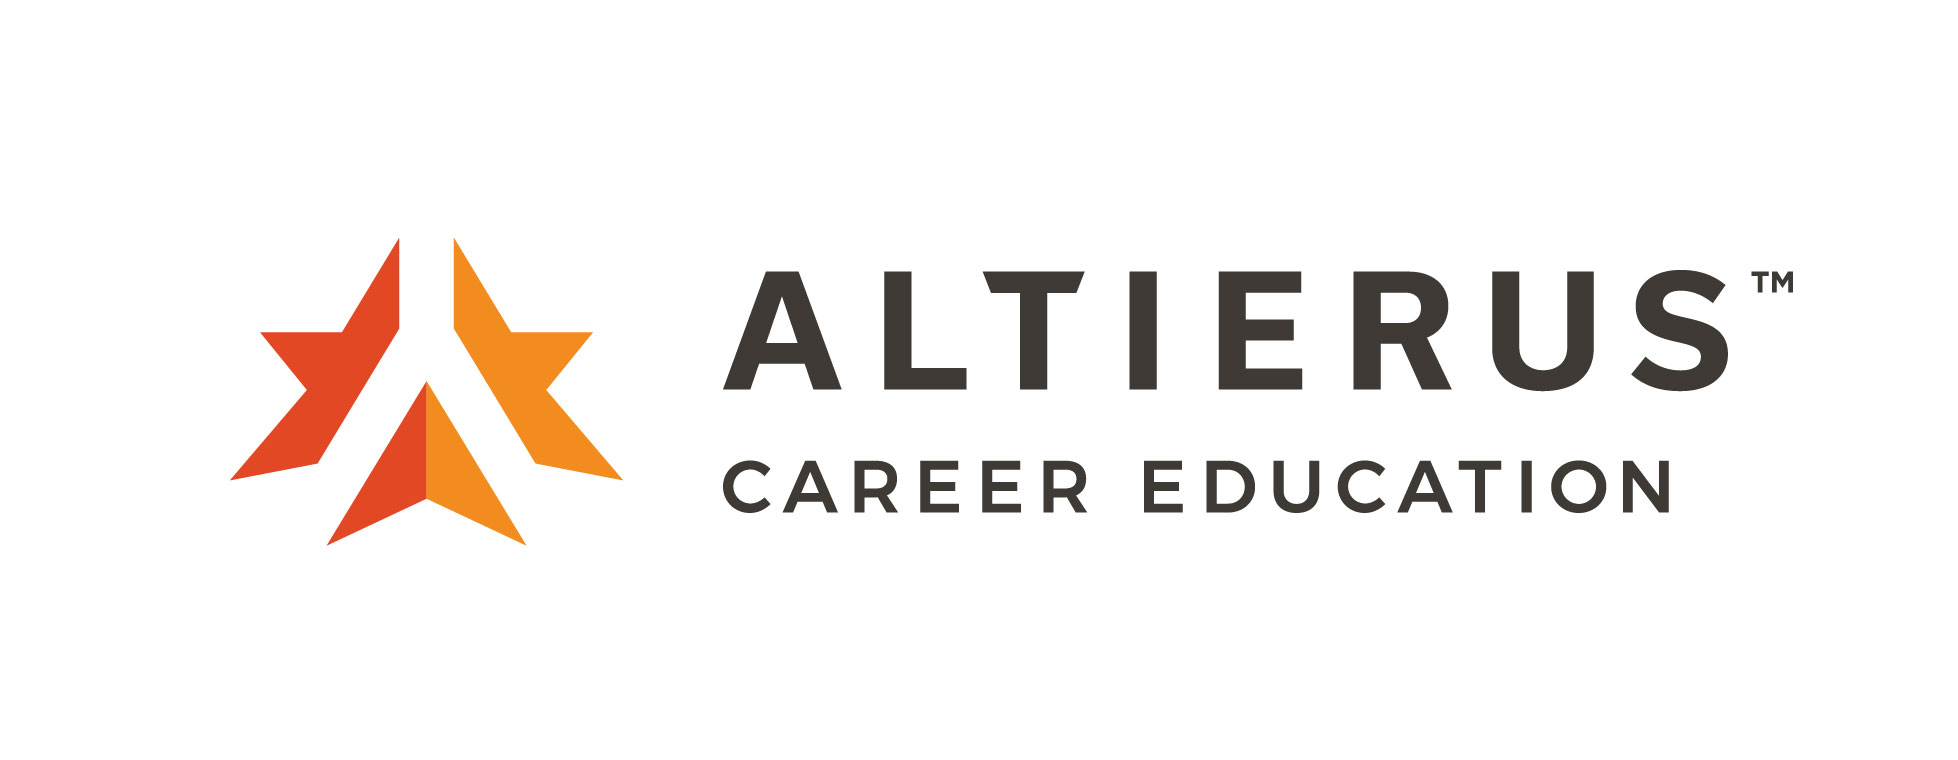 Altierus Career Education